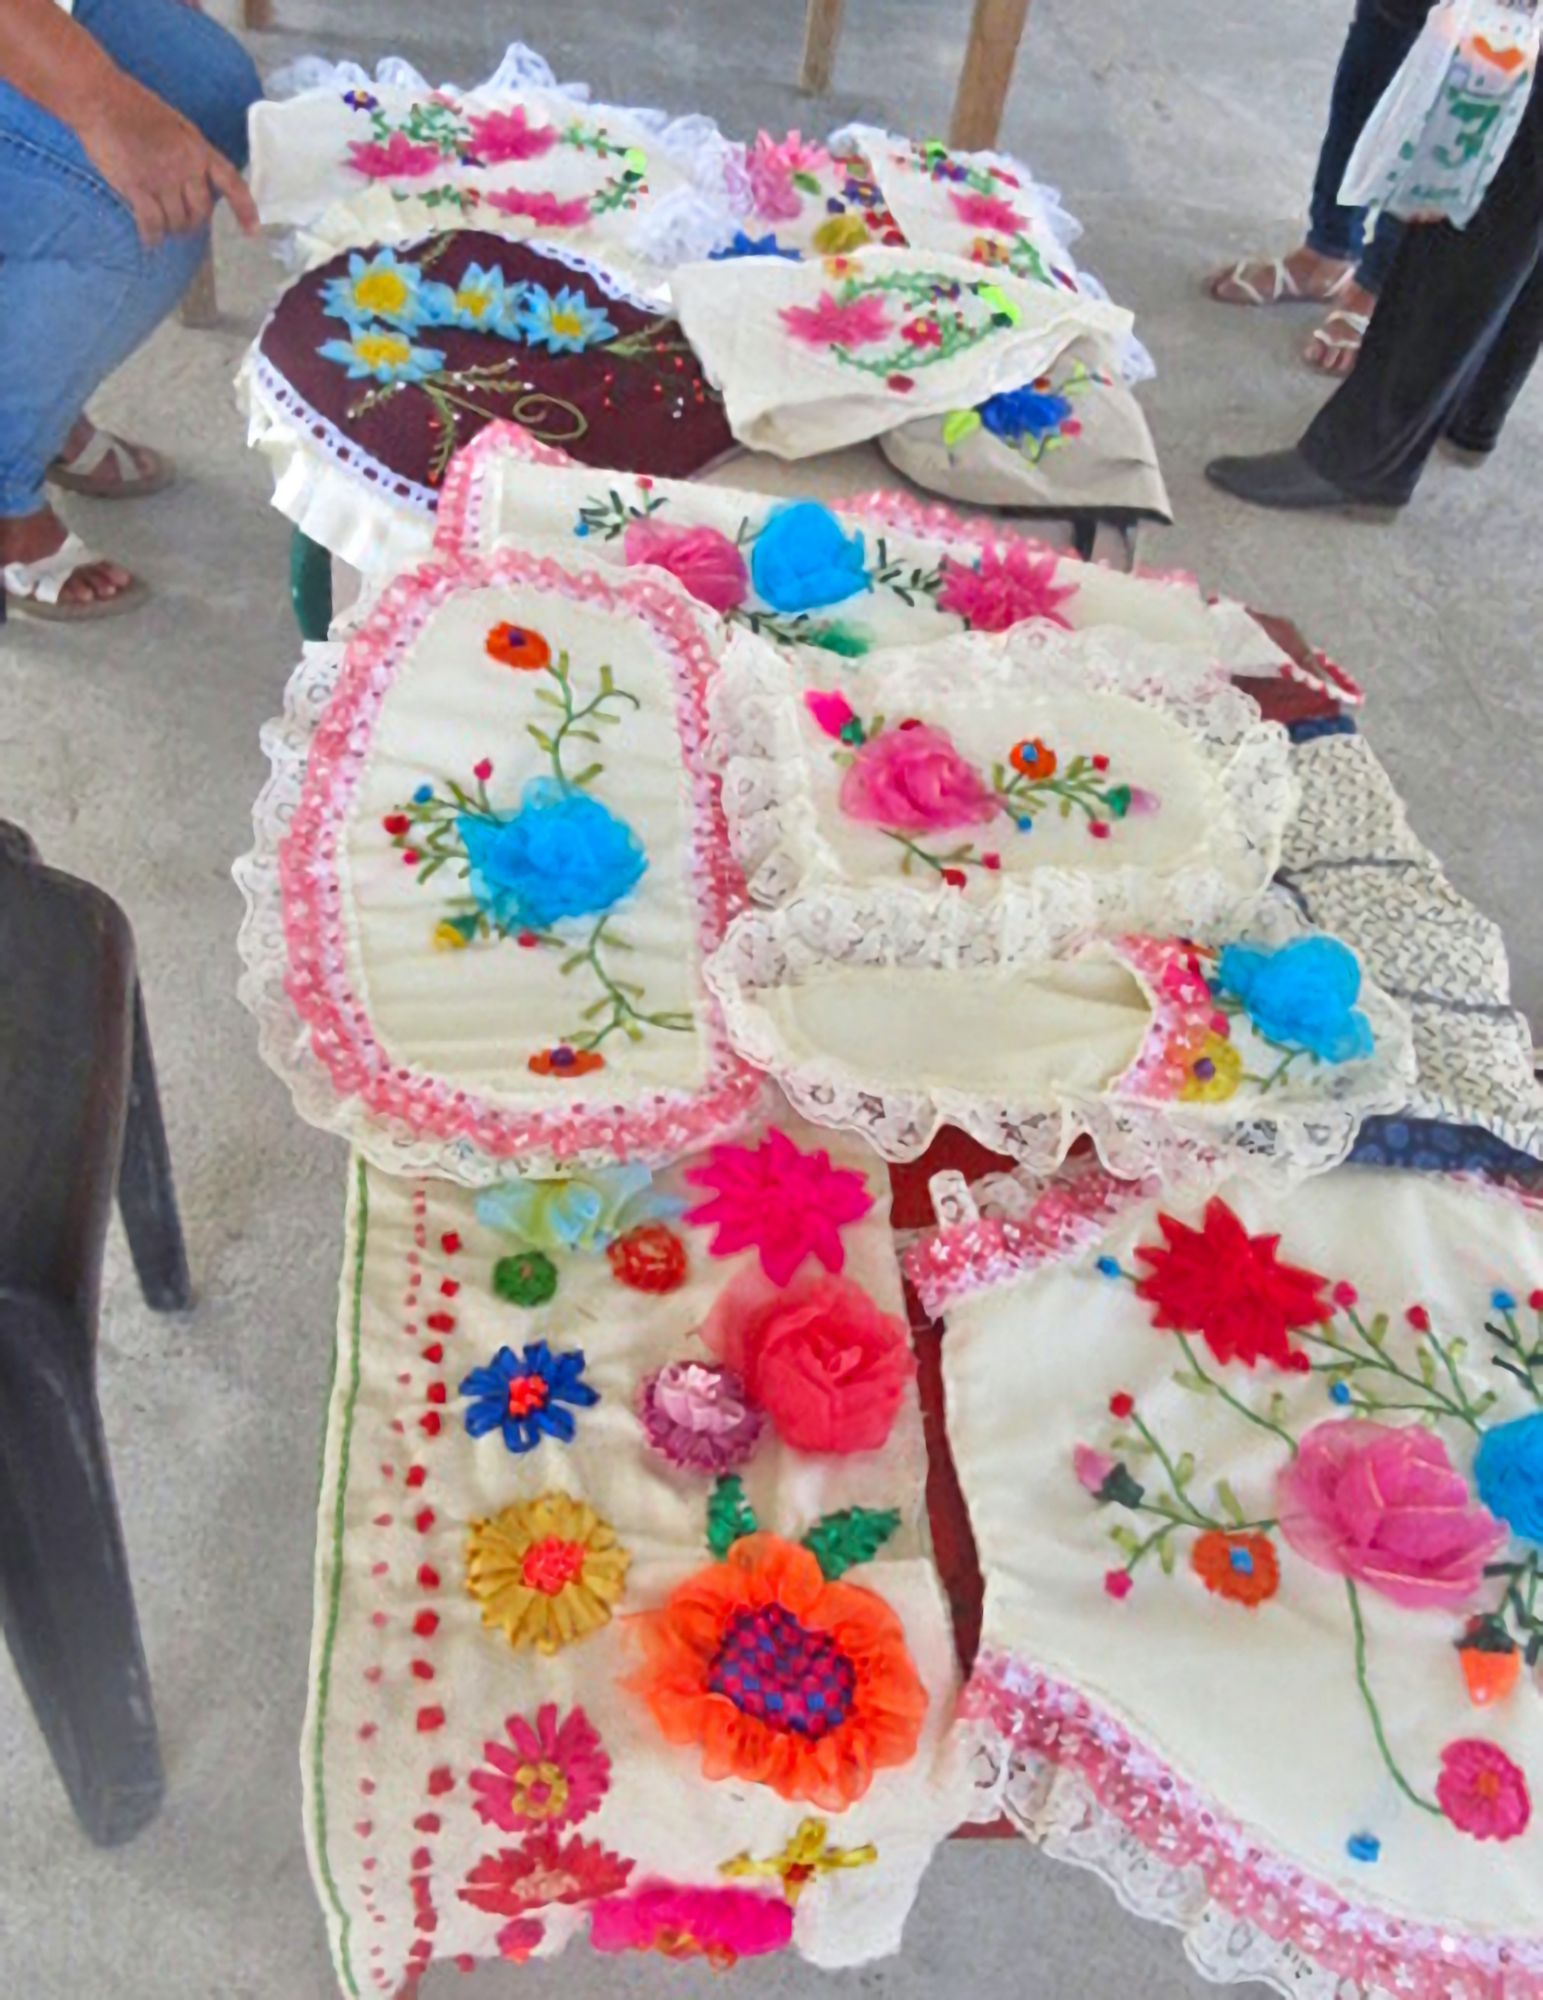 Embroidery sellers2